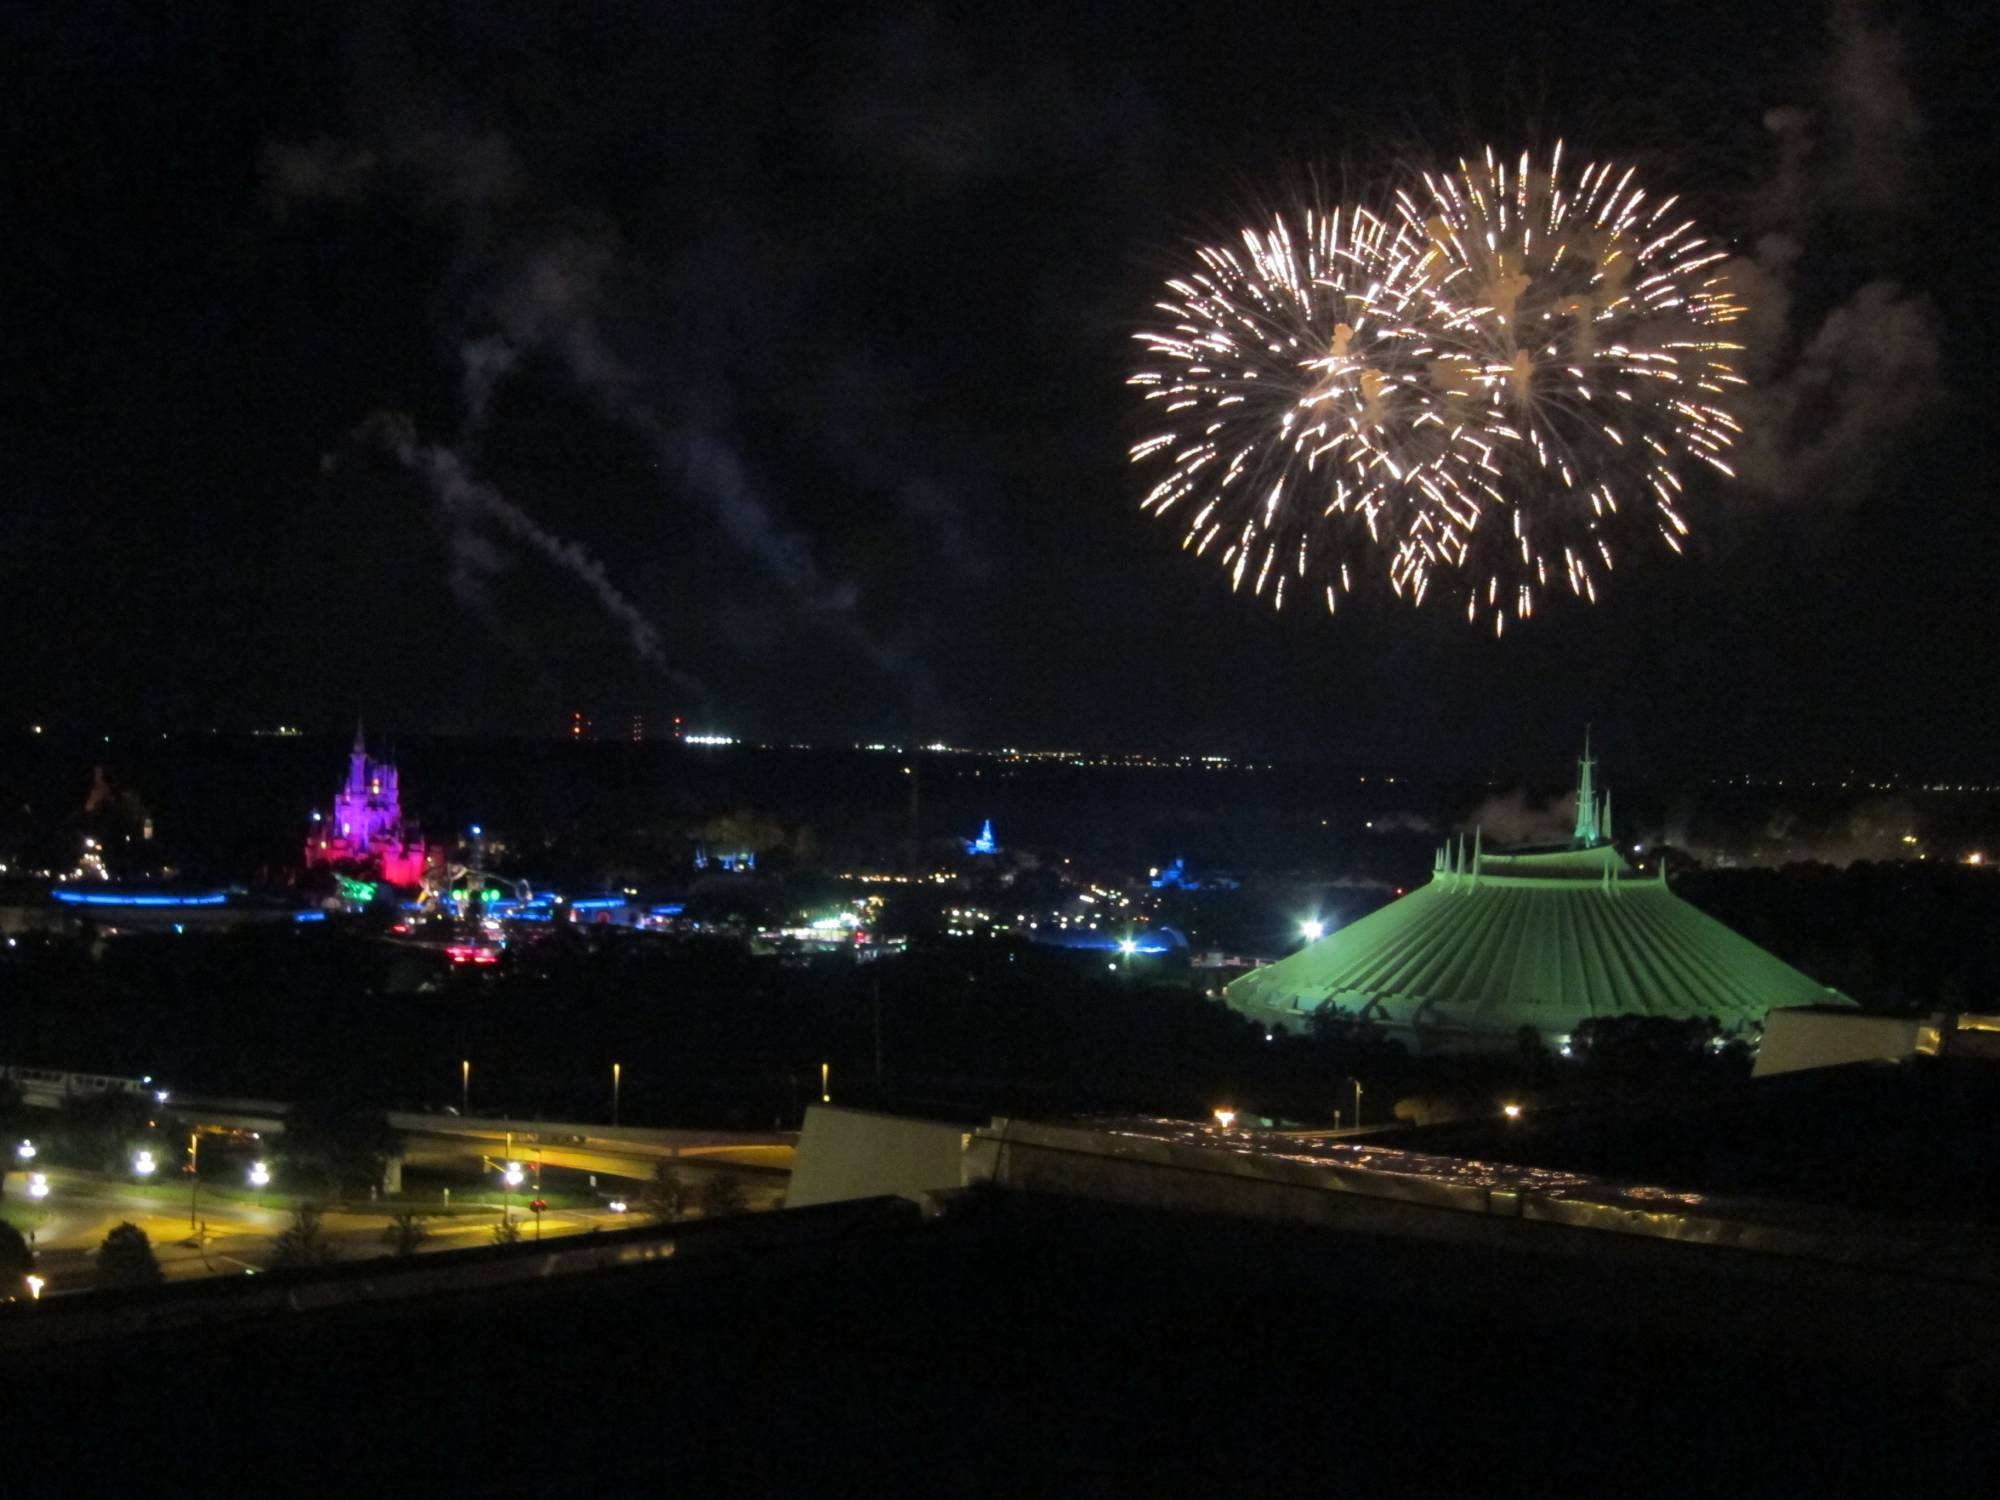 Wishes Fireworks Viewing Suggestions |PassPorter.com